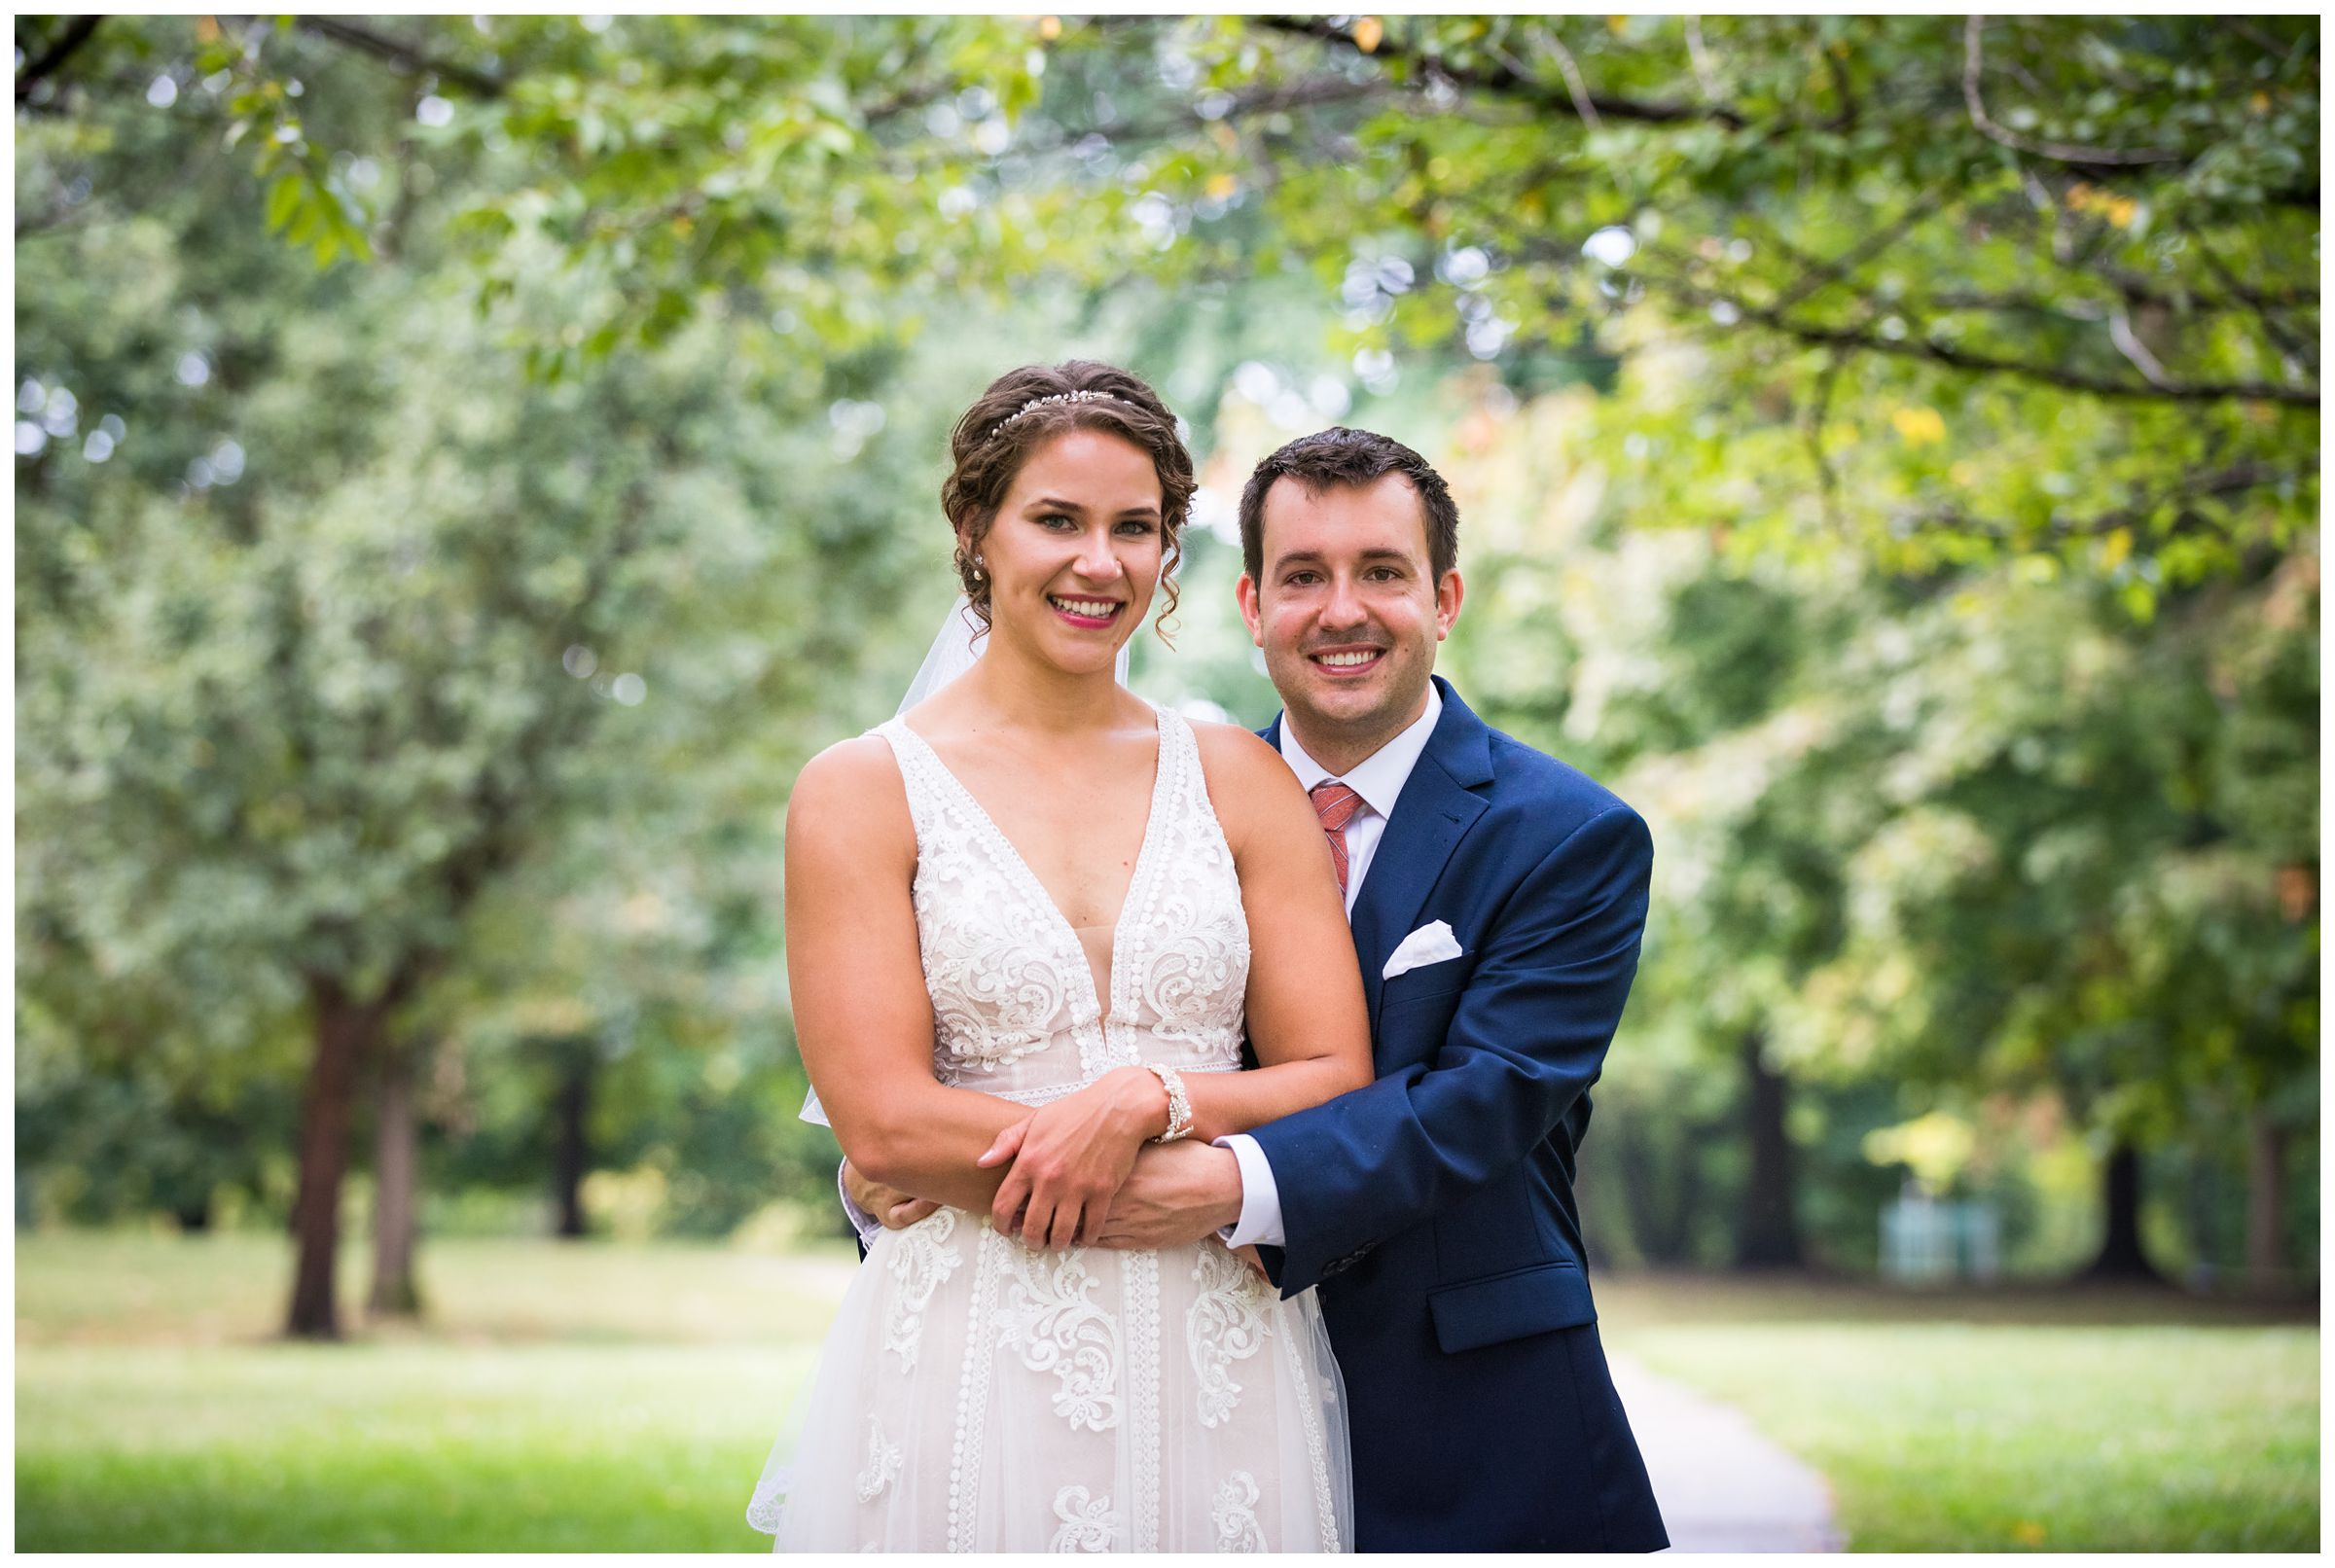 wedding portraits at Goodale Park in the Short North in Columbus Ohio